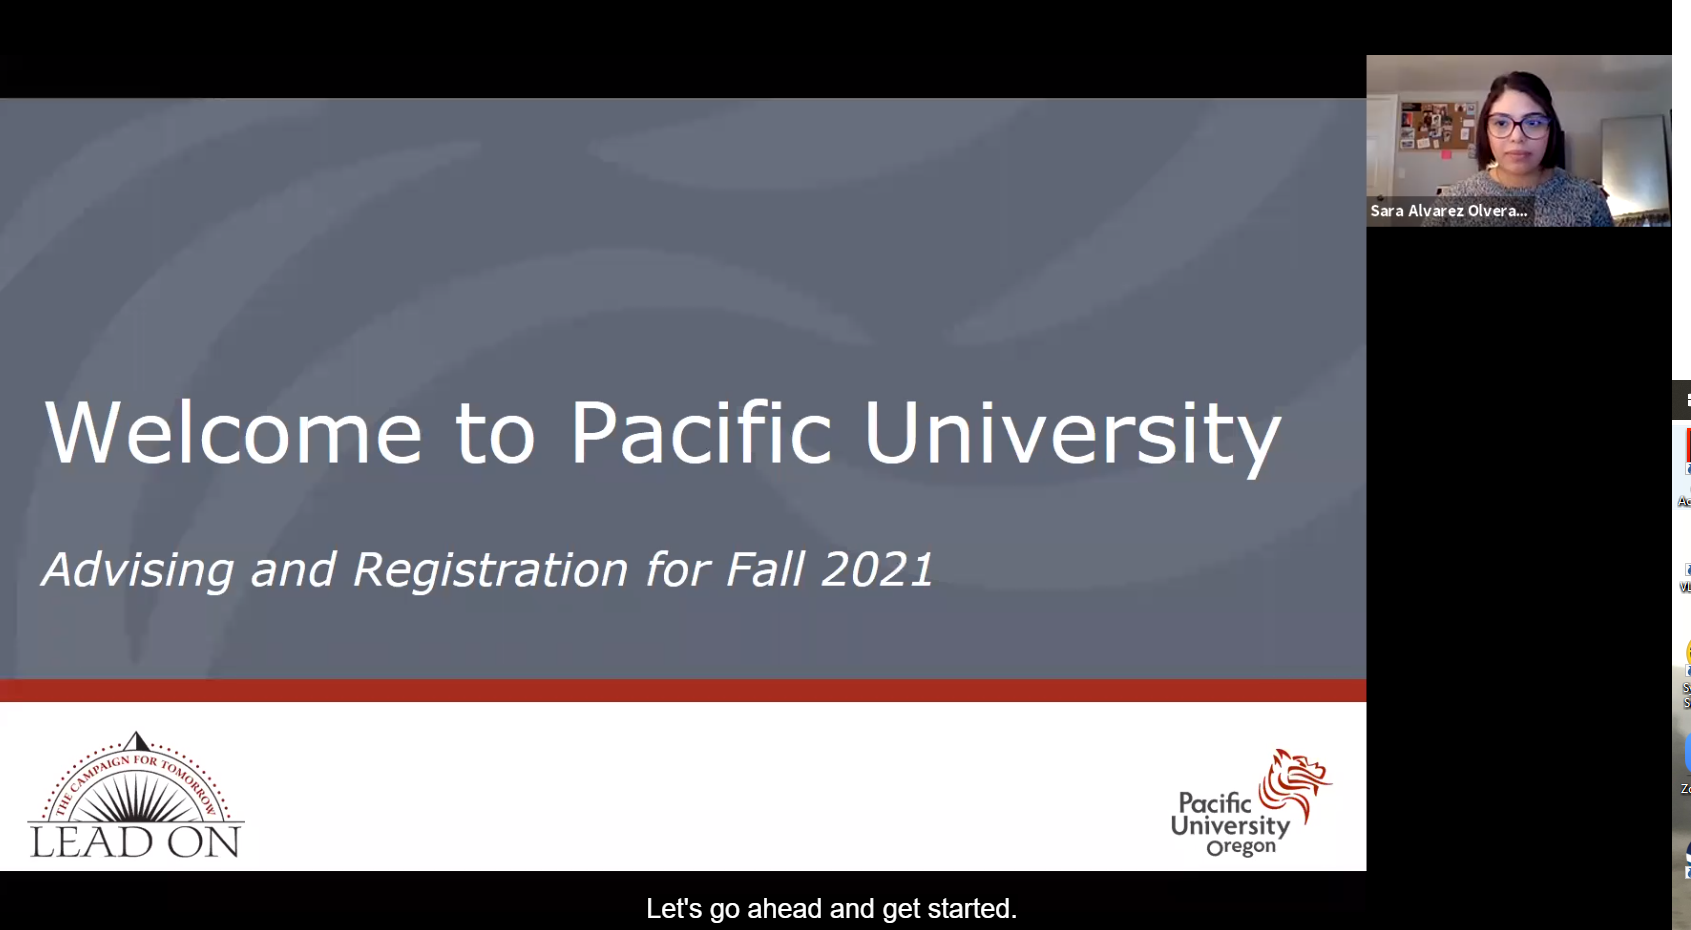 welcome to pacific university advising and registration steps